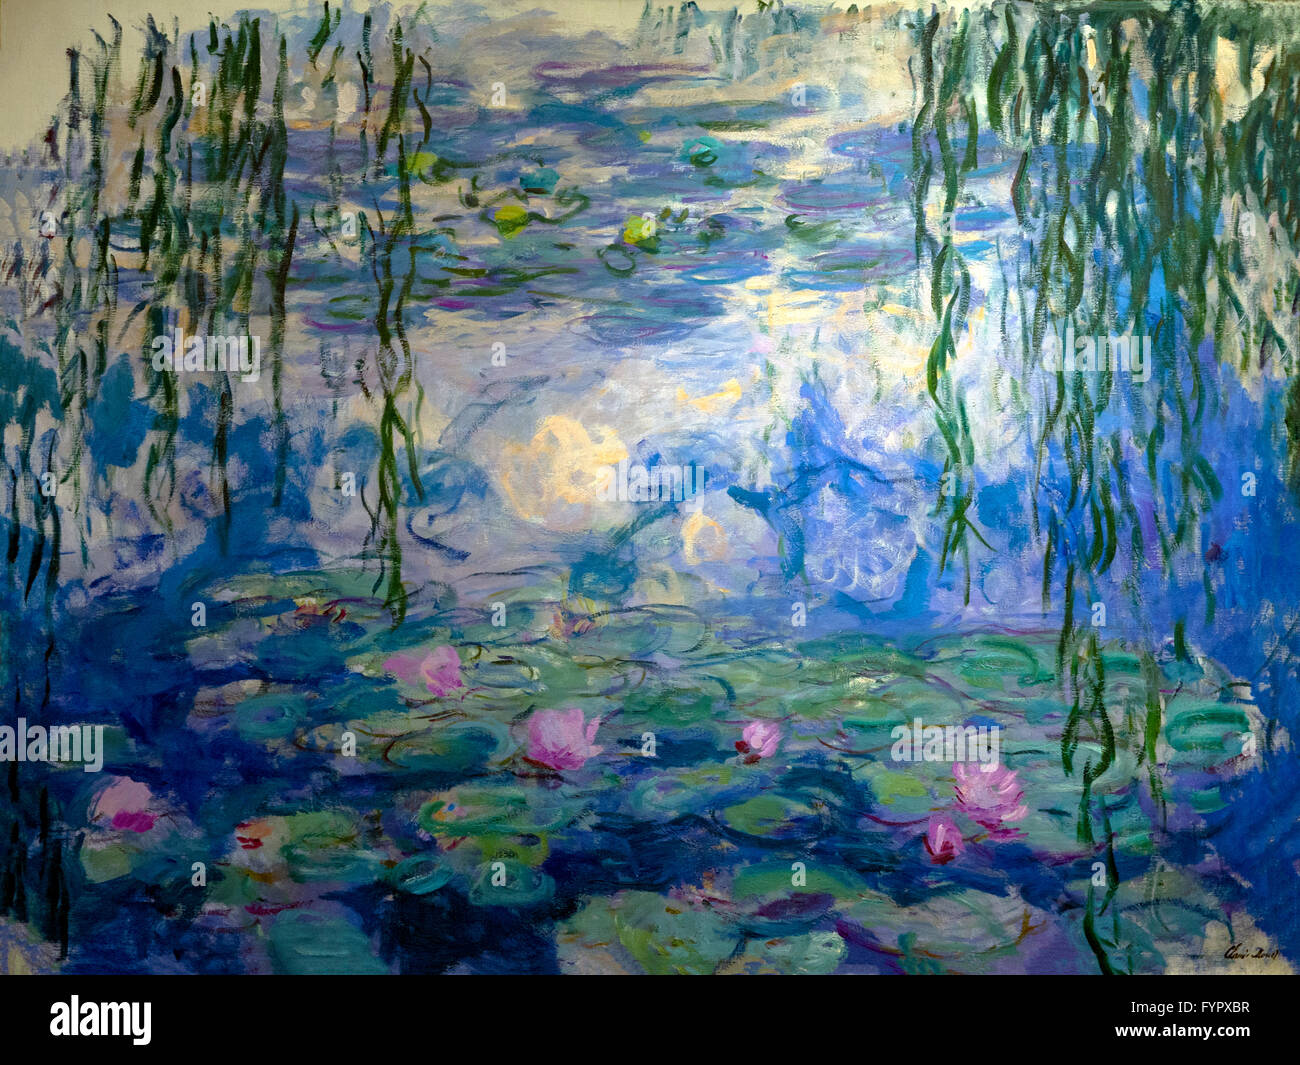 Water Lilies, Nympheas, by Claude Monet,  Musee Marmottan Monet, Paris, France, Europe - Stock Image